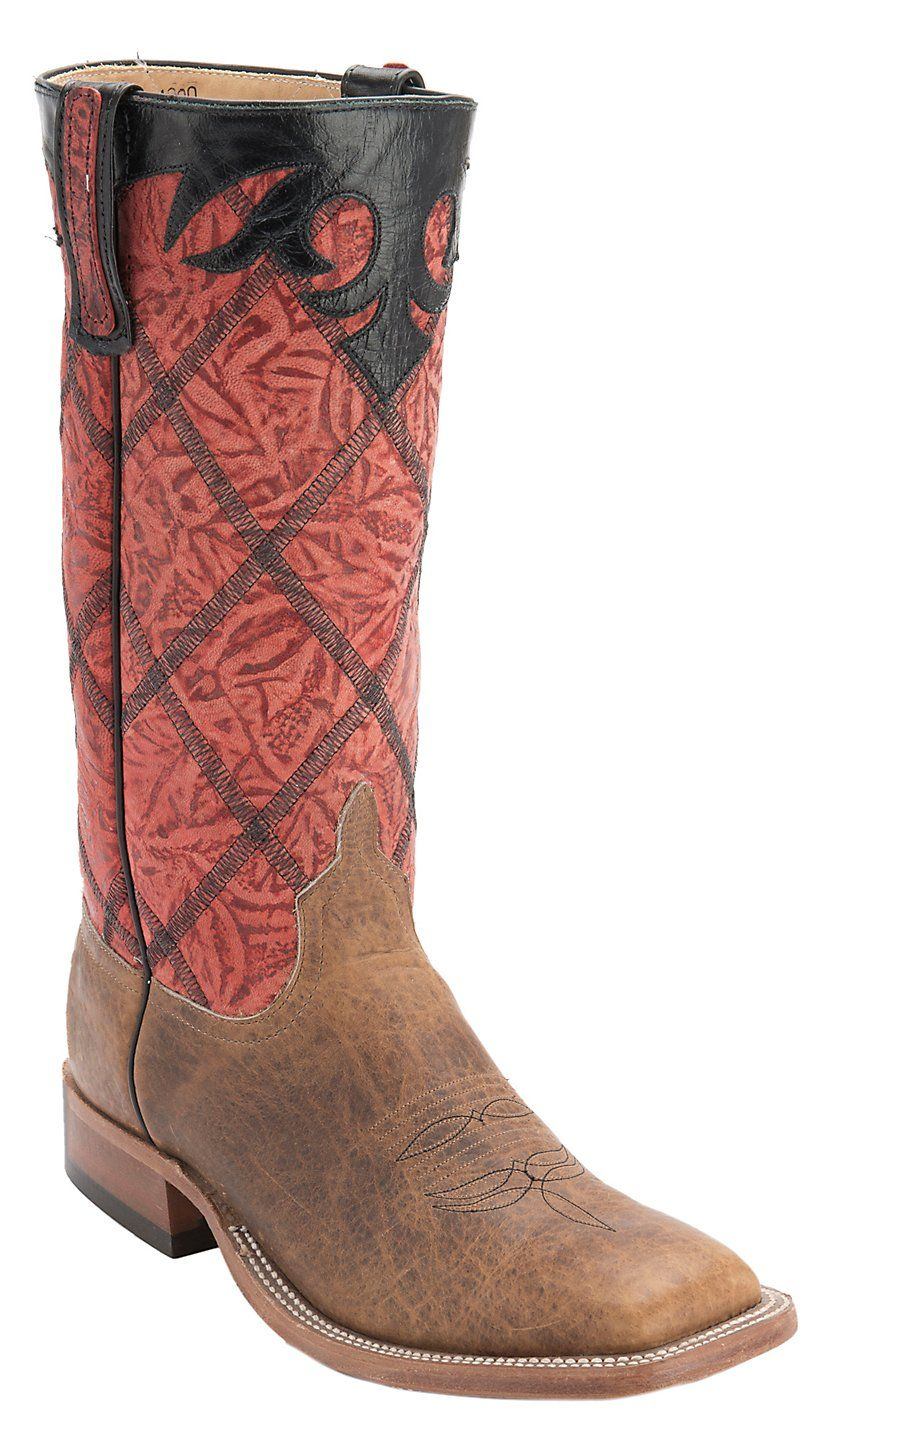 19ea56fe70d Anderson Bean Men's Brown with Red Diamond Stitched Stovepipe Top ...